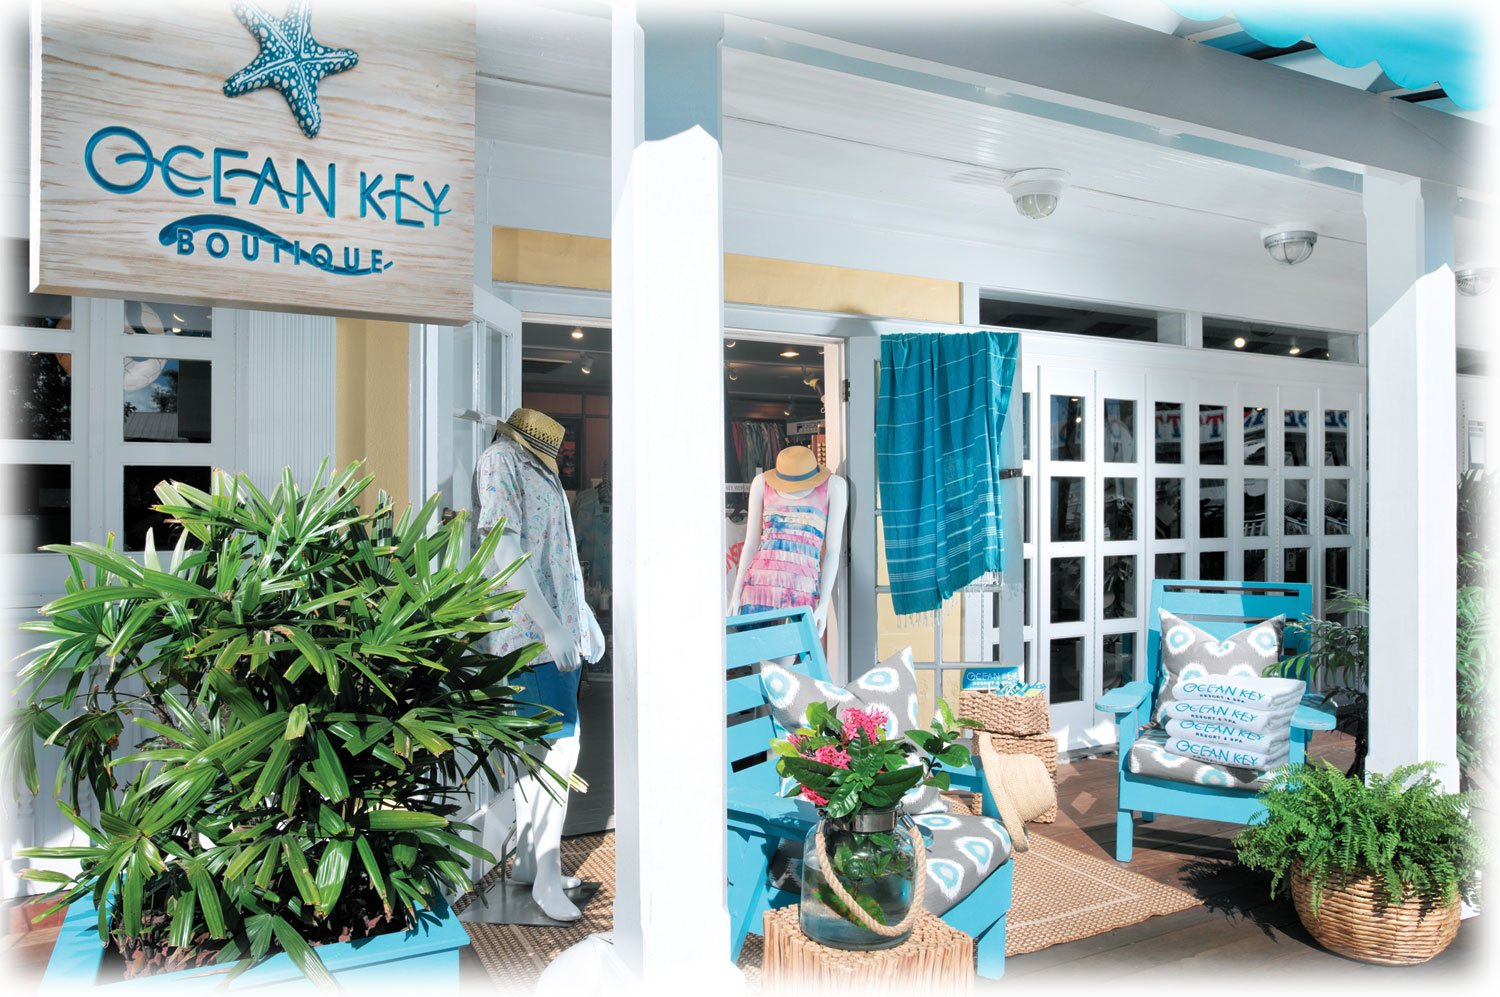 Selling in Relaxing Settings  <br> Apparel, Sunglasses and Accessories at  Resort and Seaside Stores